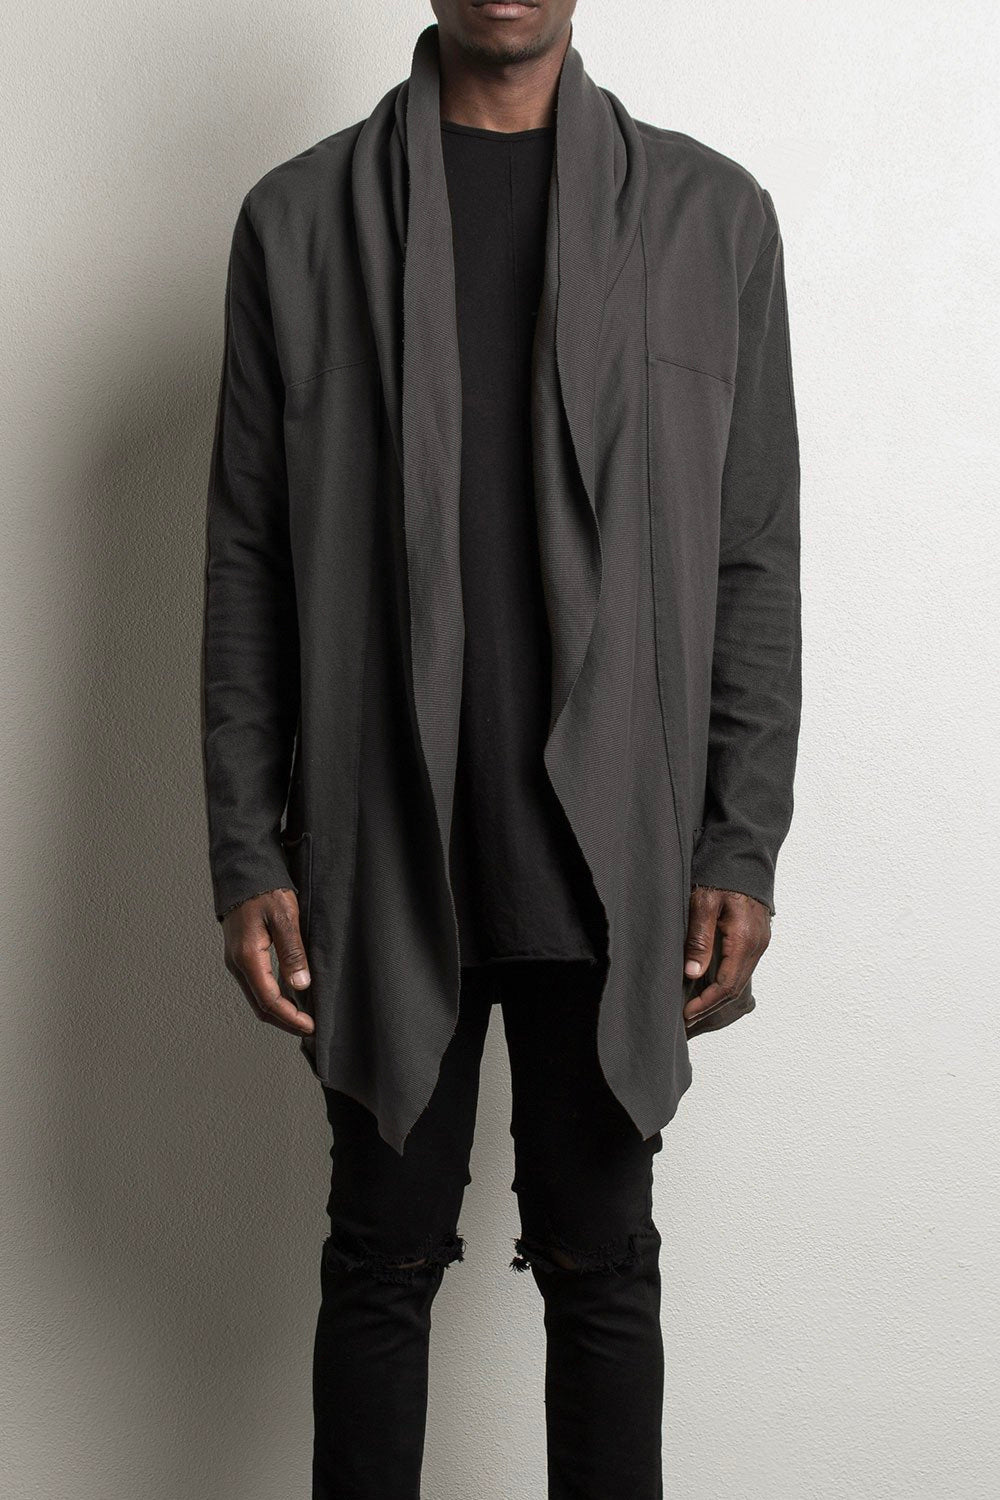 shield cloak ii / vintage black